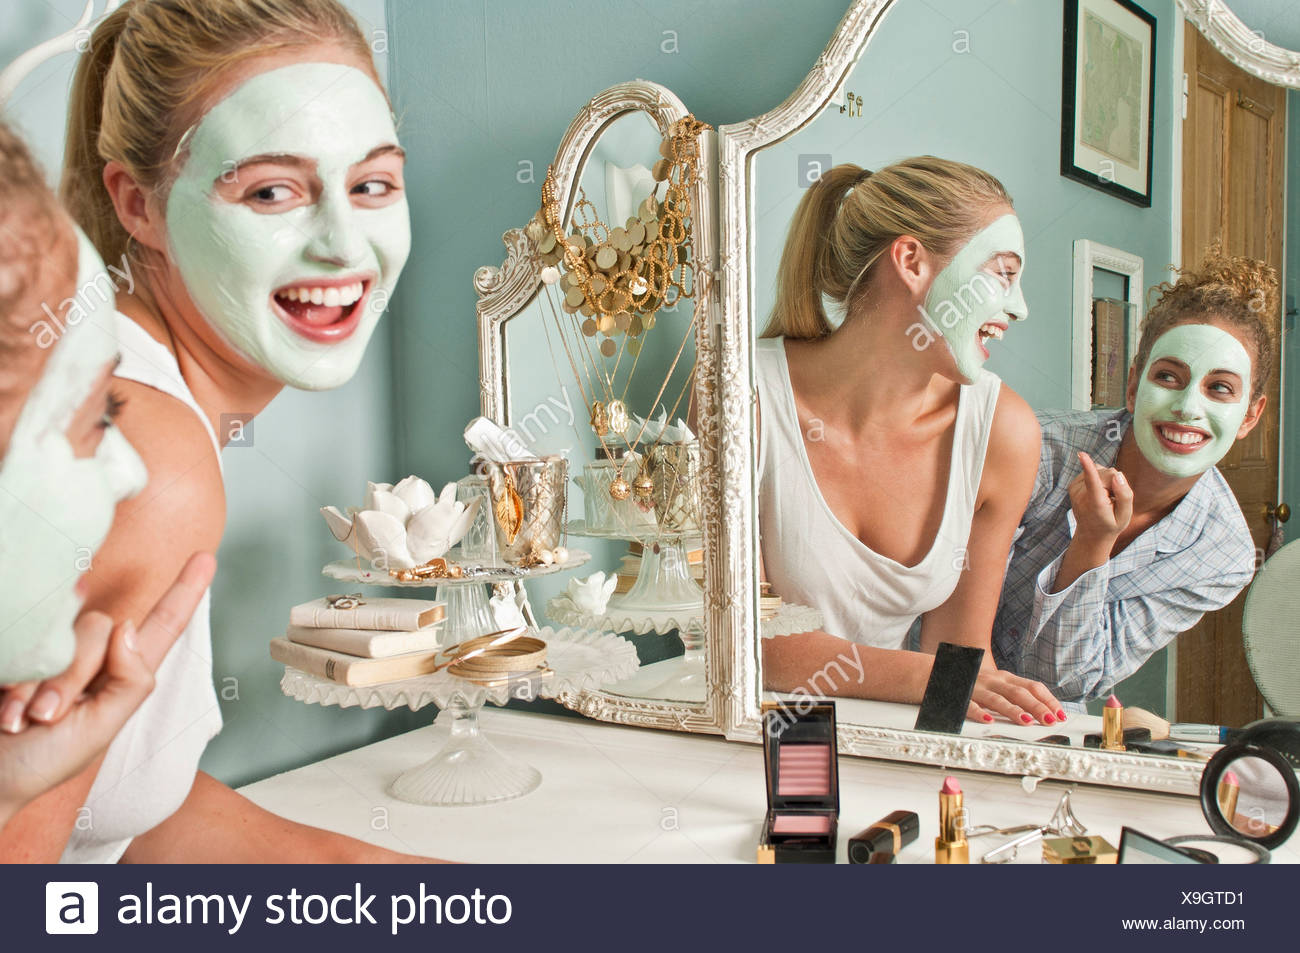 Women in face masks - Stock Image